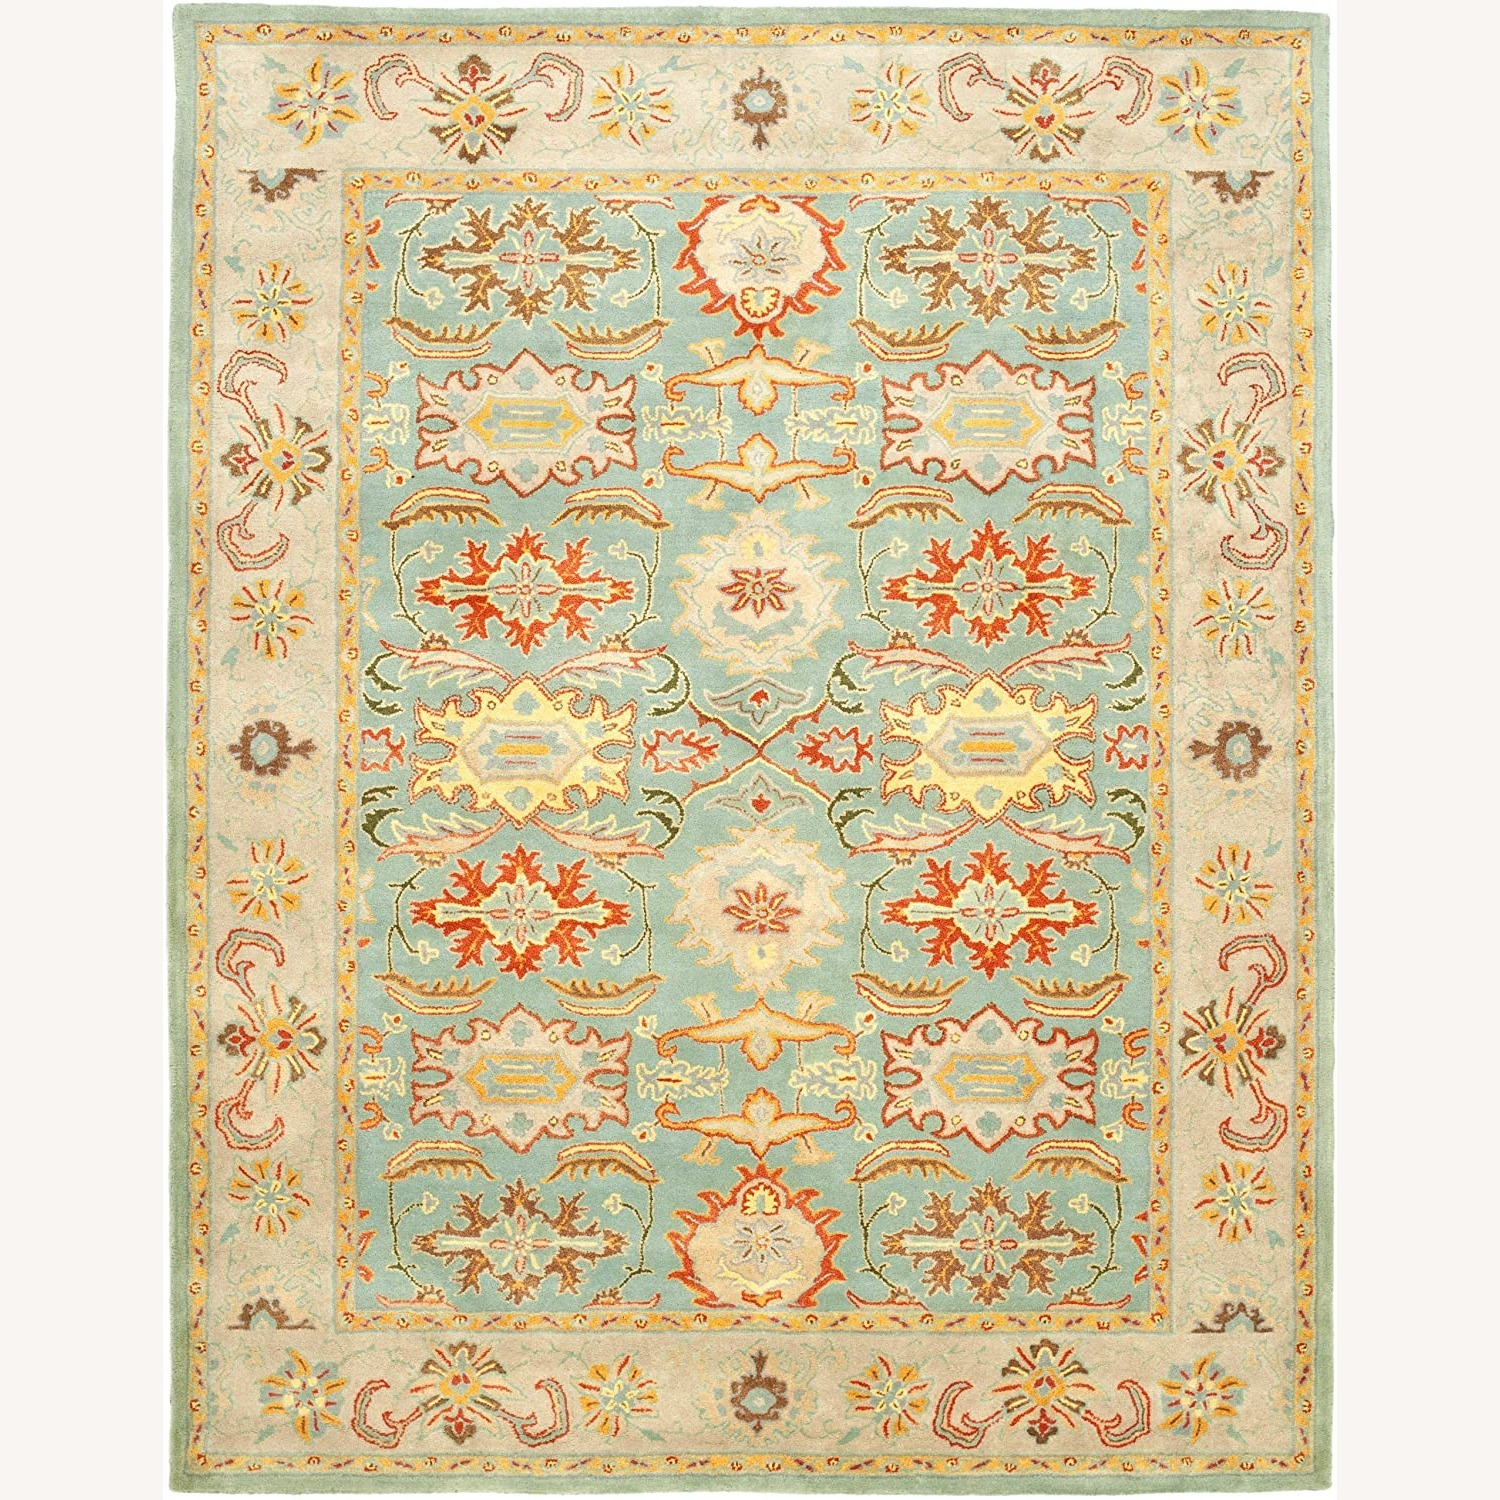 Safavieh Heritage Collection Blue Rug - image-6